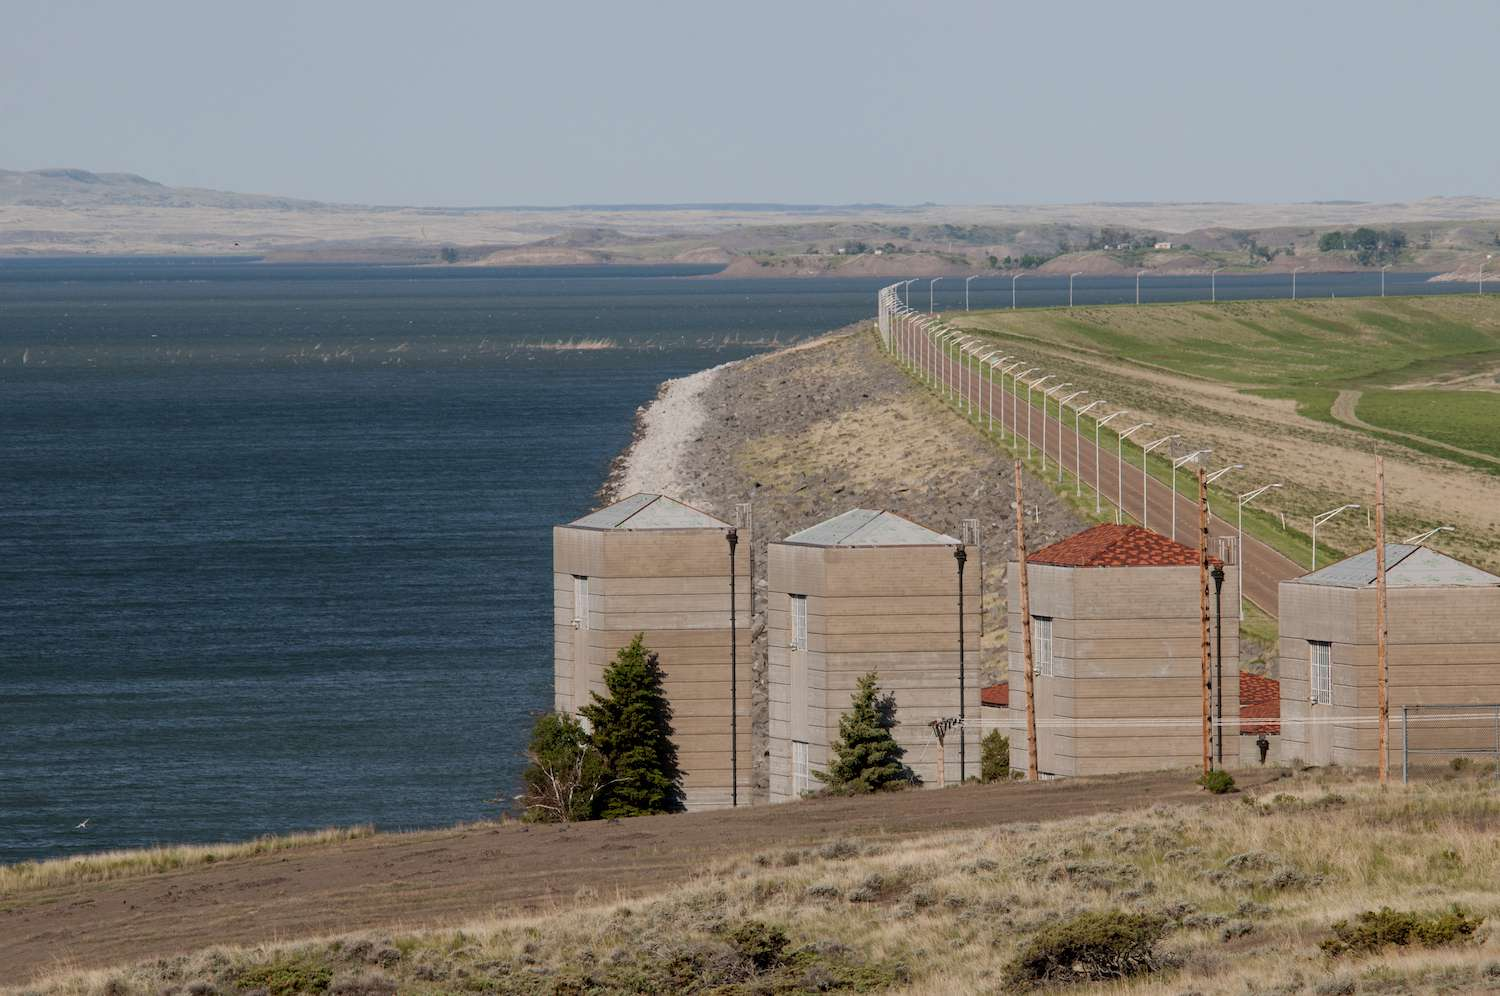 Fort Peck Dam stretches into the distance as it holds back the water of the great Missouri River